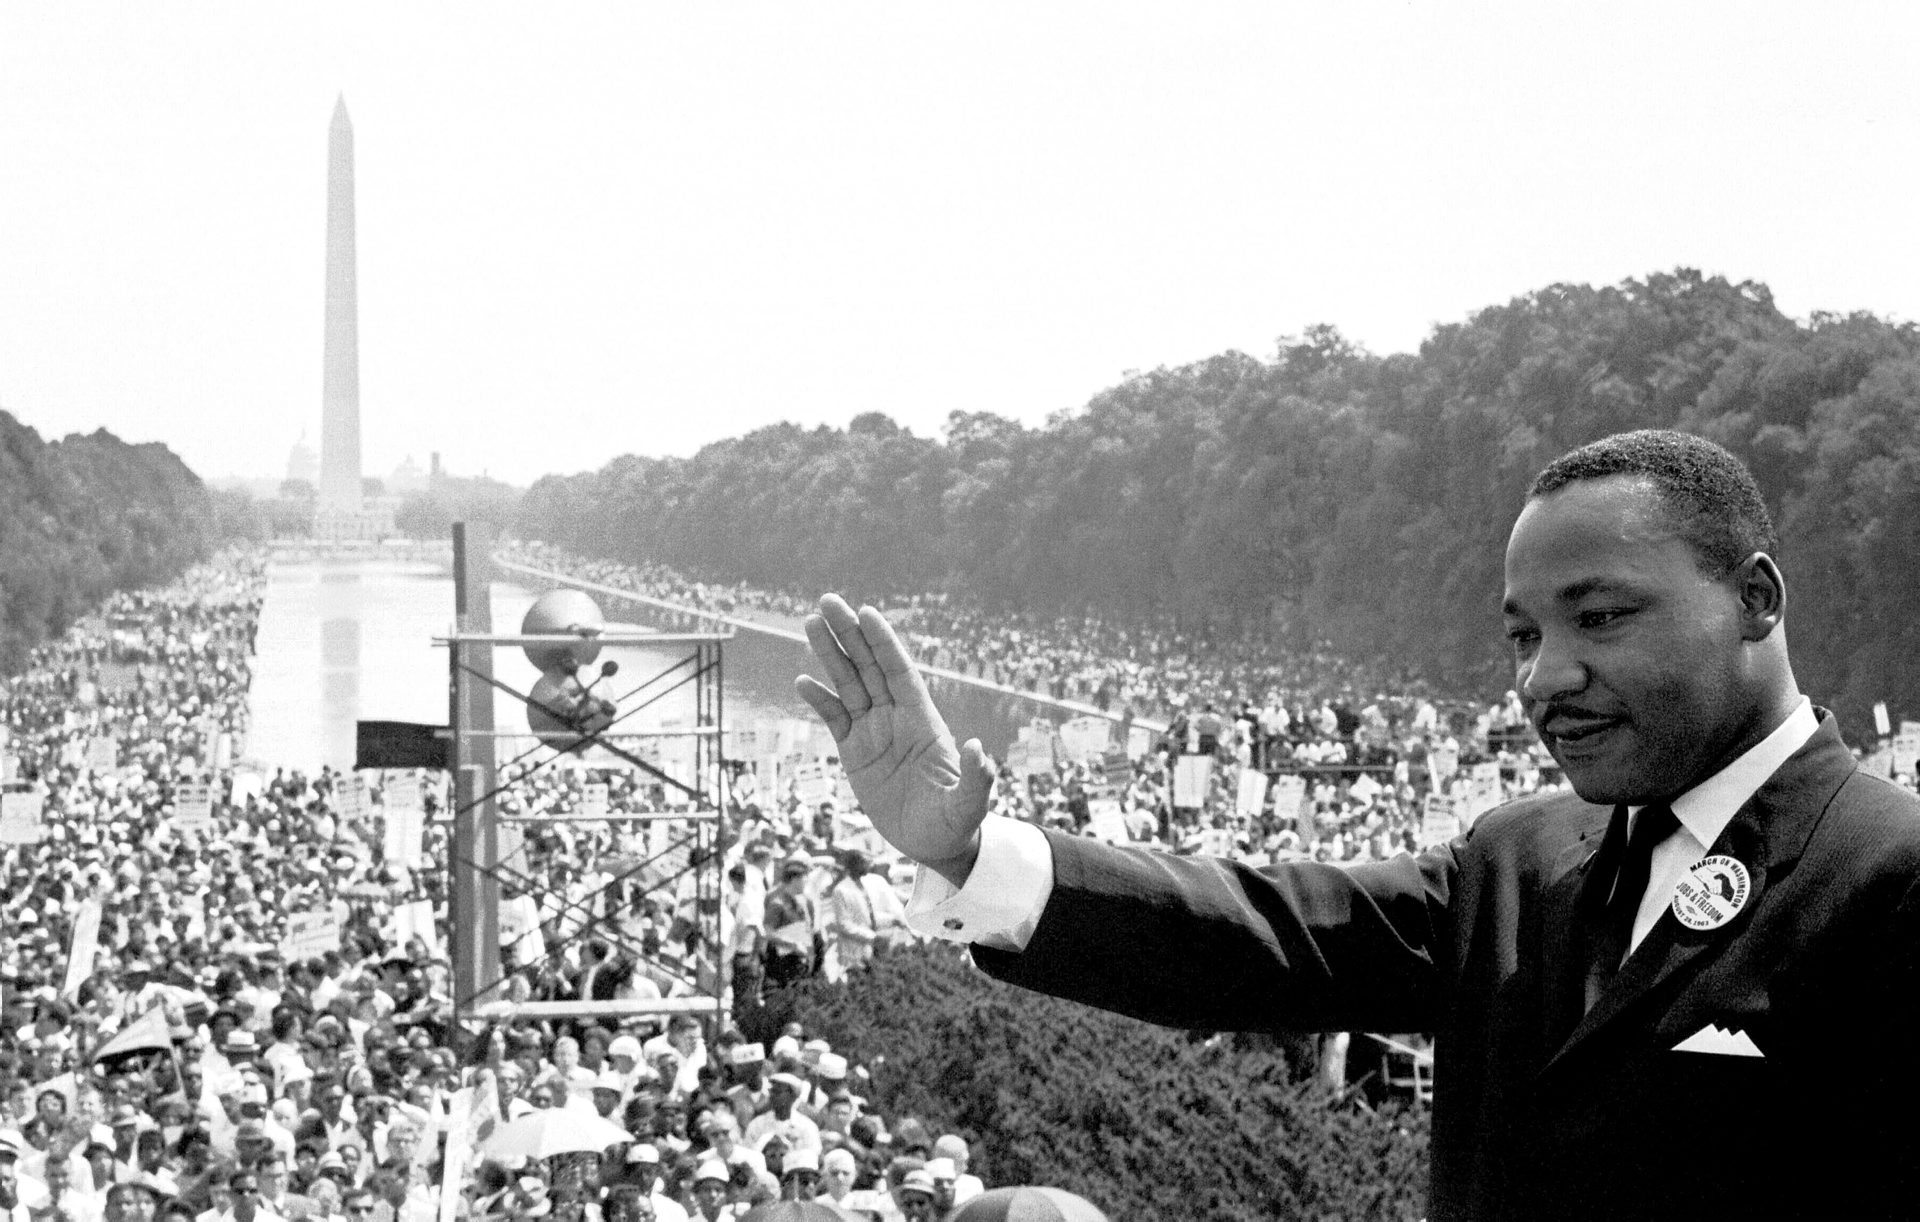 Civil Rights March Leader Washington DC Leader of the huge Civil Rights March in Washington August 28th Doctor Martin Luther King is shown on the steps of the Lincoln Memorial during the massive demonstration Crowds are gathering in front of the memorial to hear speeches by the March on Washington leaders, in background is the Washington monument. 28th August 1963